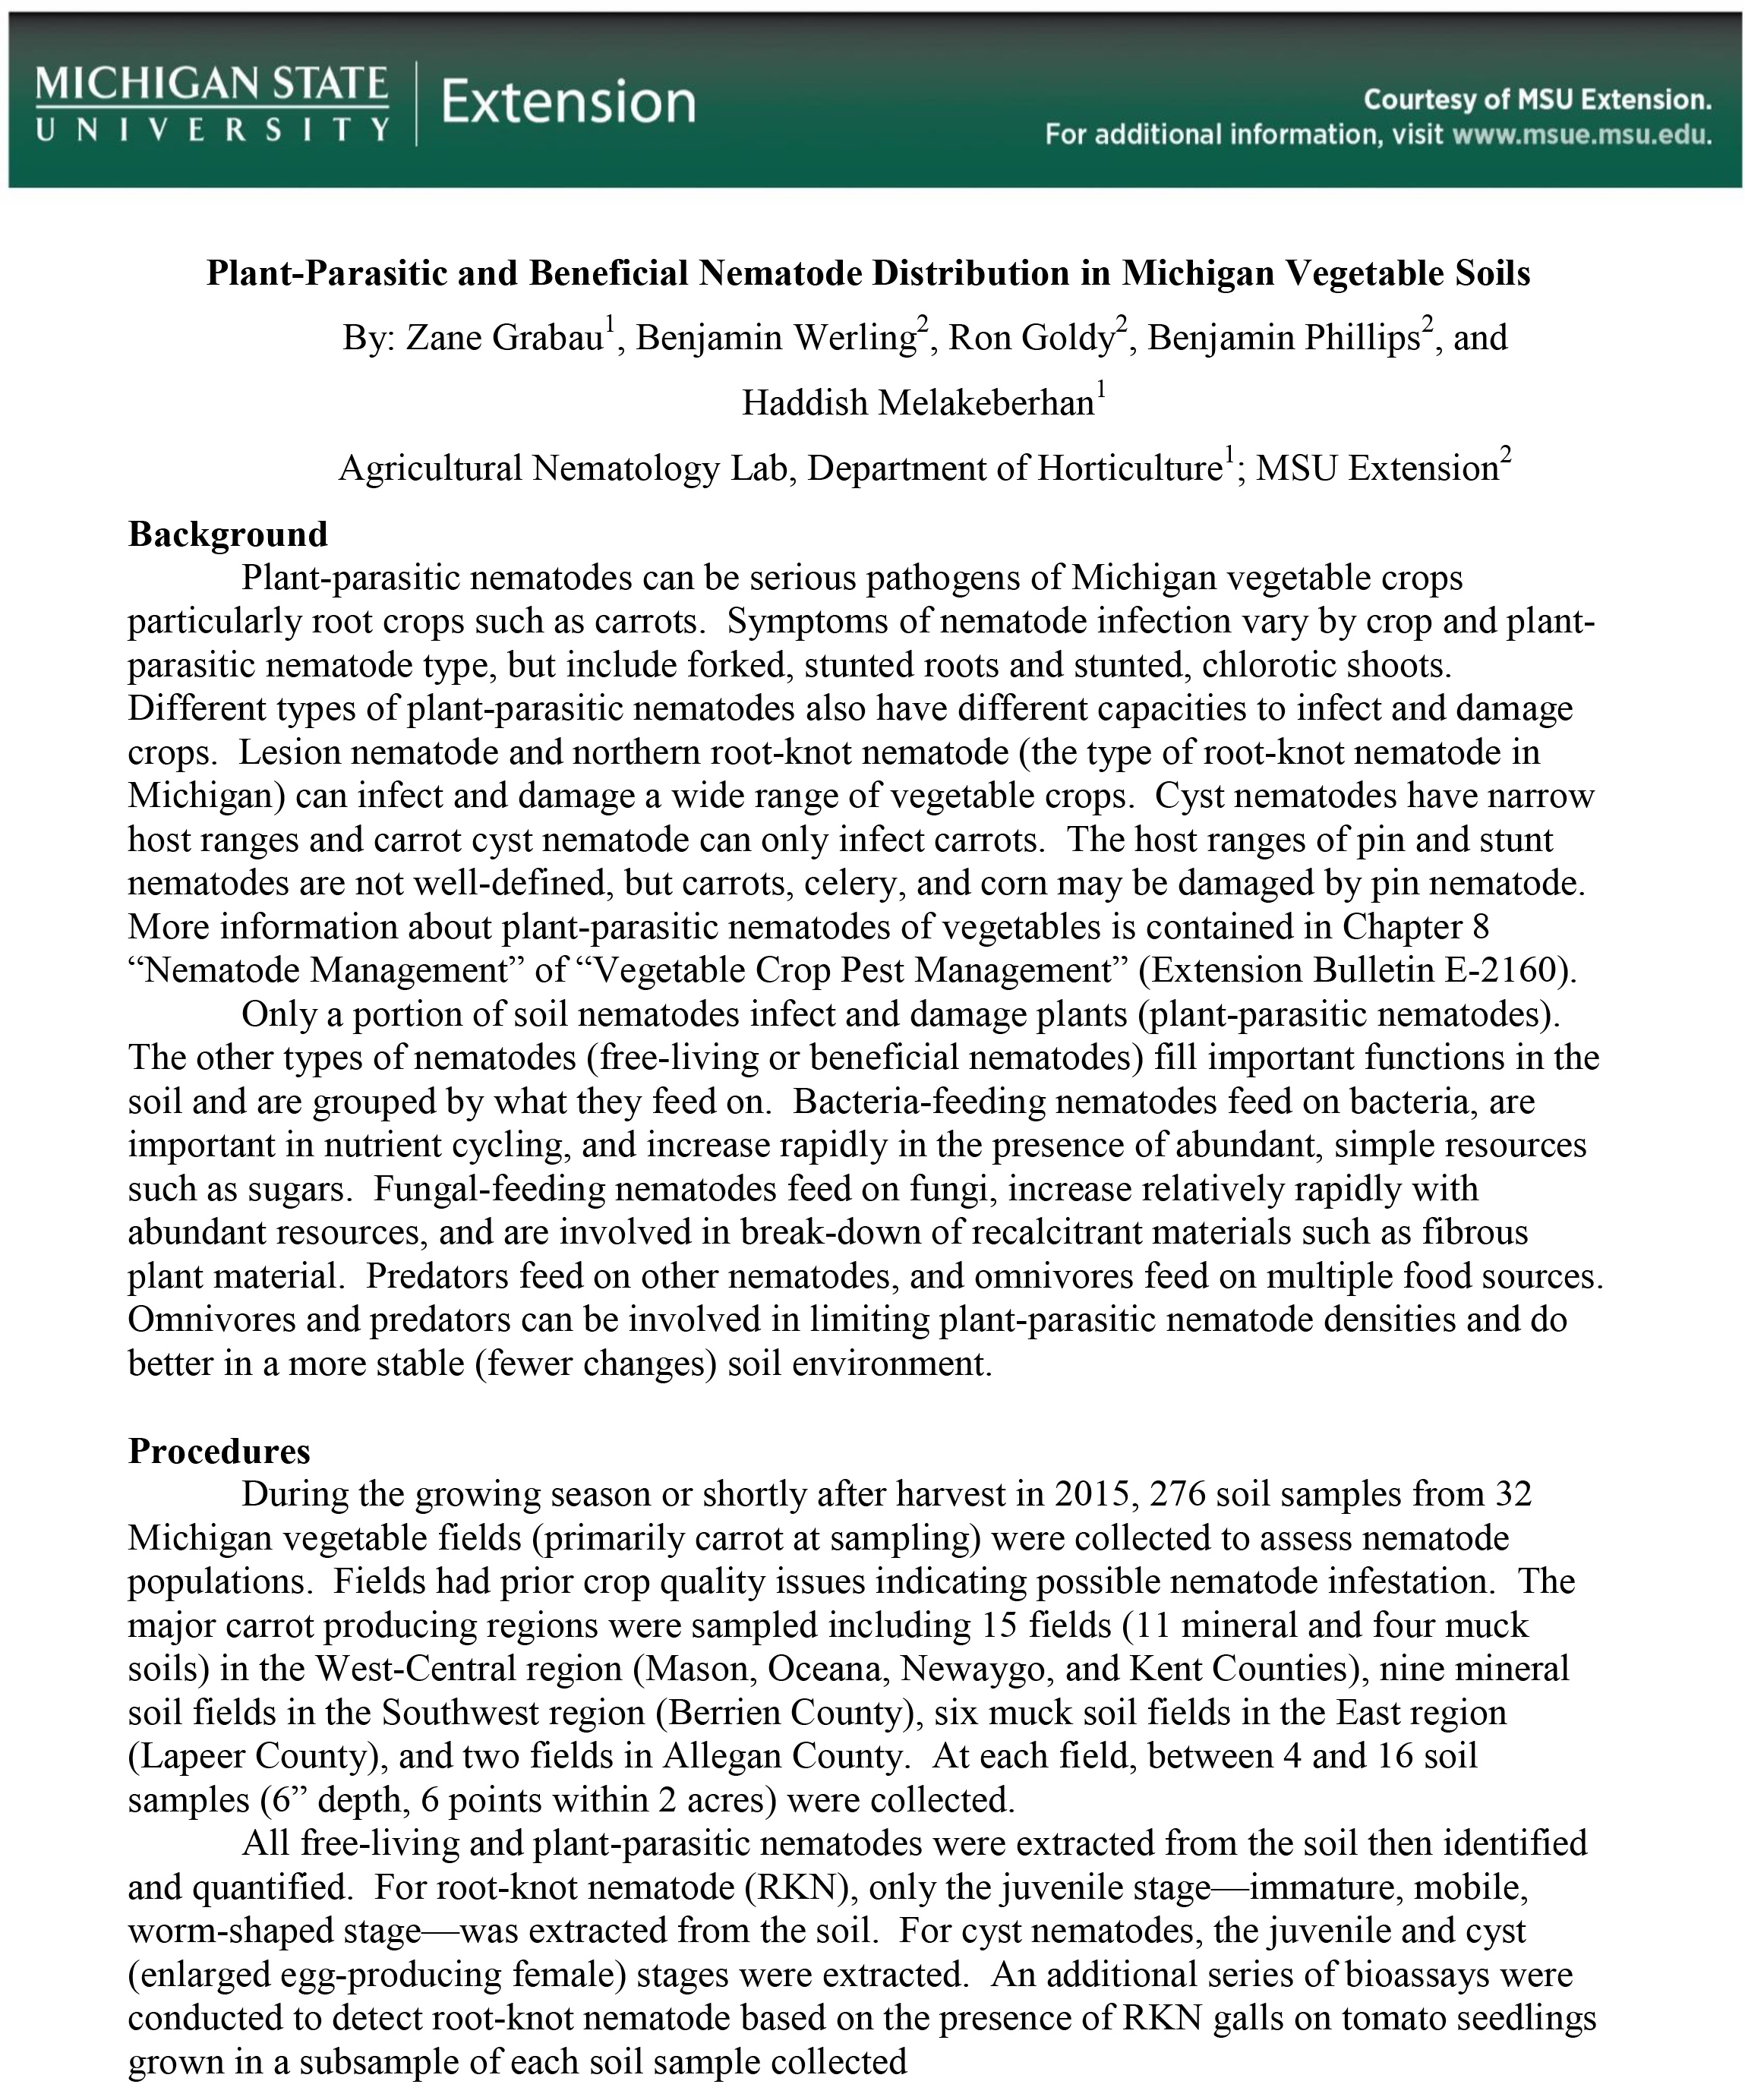 Plant-Parasitic and Beneficial Nematode Distribution in Michigan Vegetable Soils